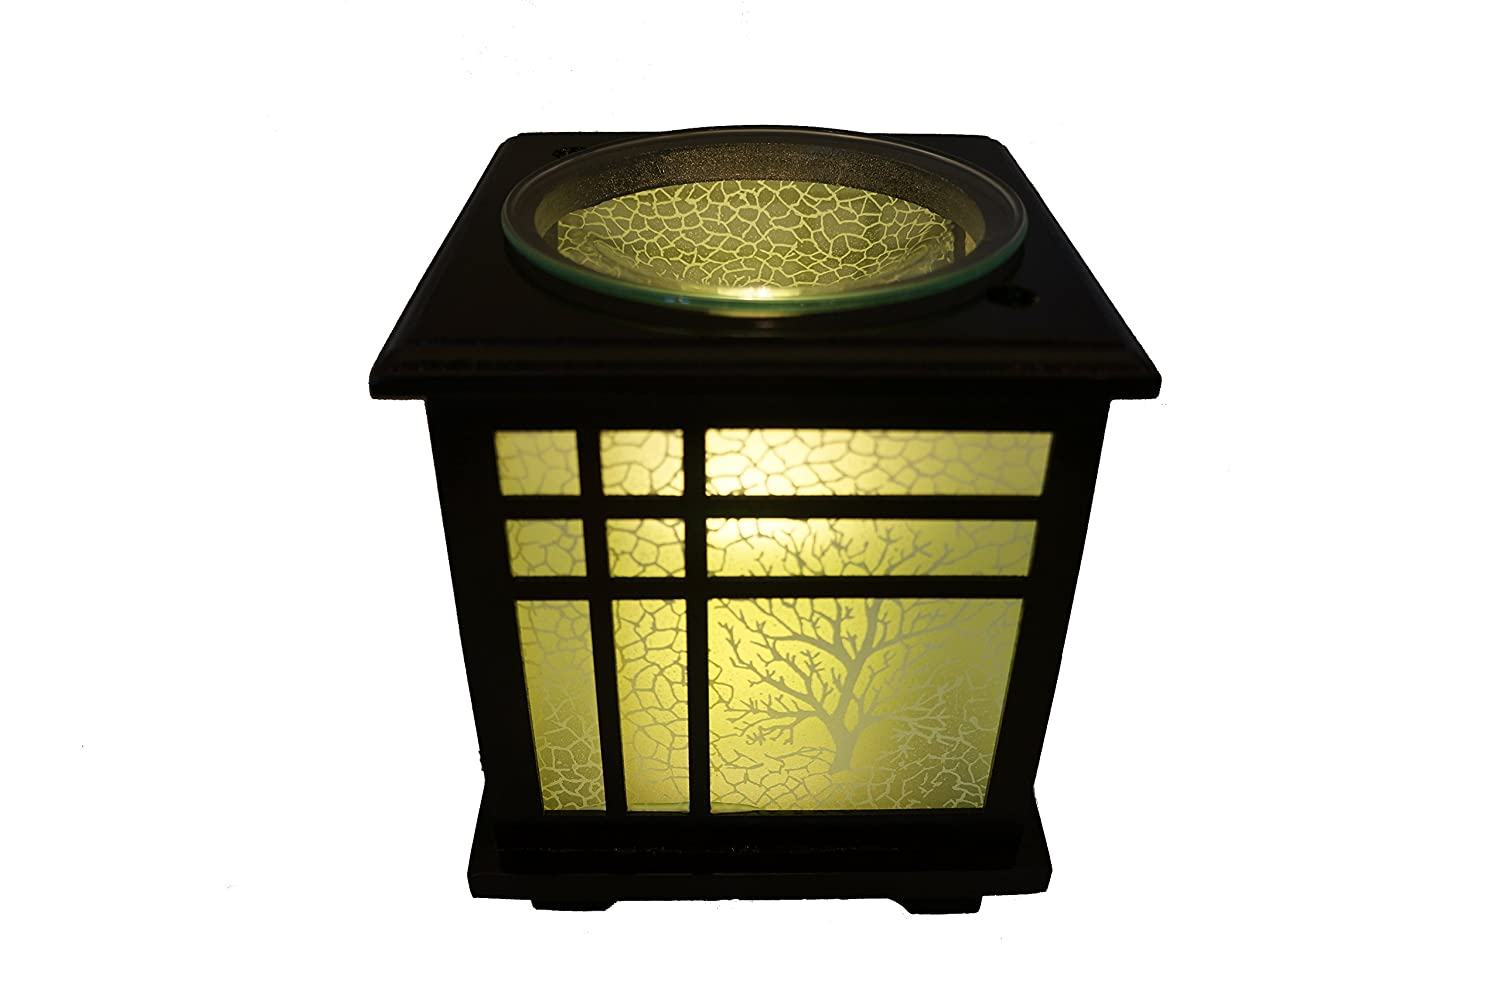 1 Bonsai Coo Candles Electric Candle Wax Melt Warmer or Oil Burner Lamp Combo